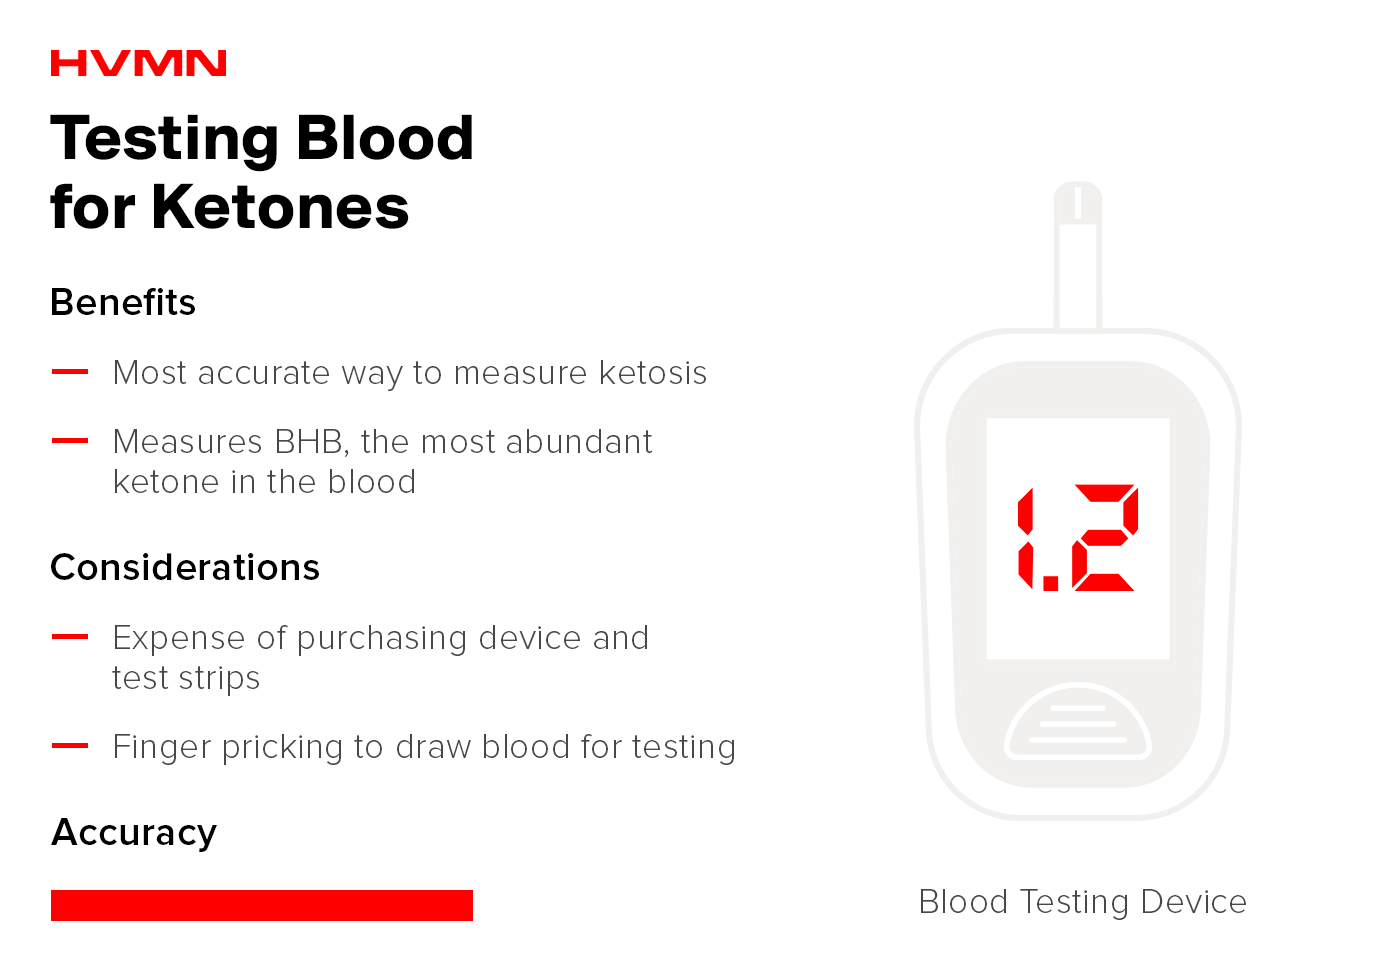 How to measures ketones in the blood.